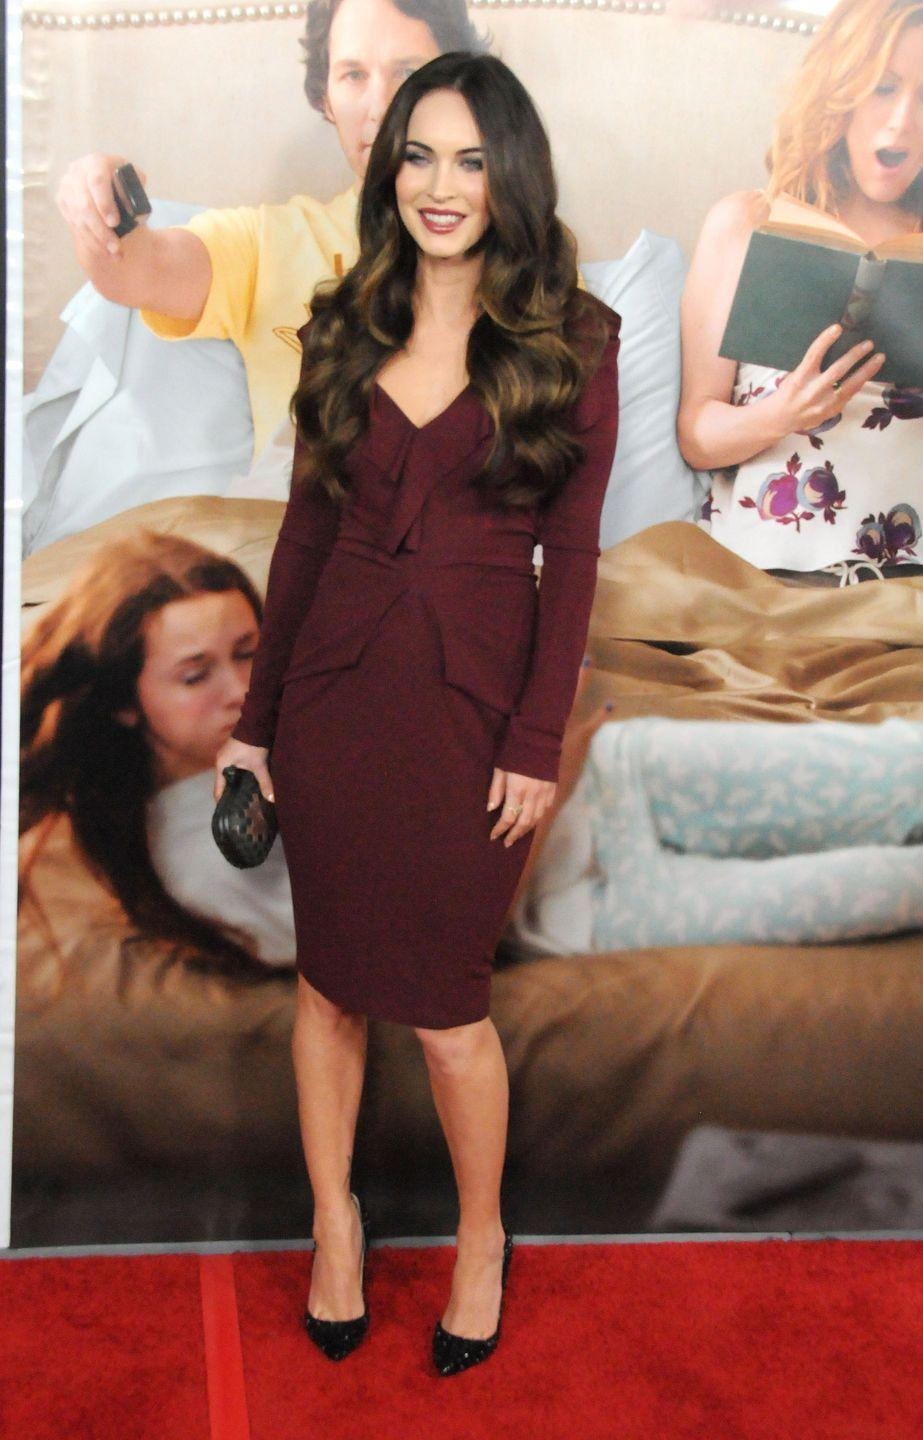 <p>Fox styled a tight maroon-coloured dress with a pair of black studded heels for the premiere. She kept her make-up vampy with a slick of dark red lipstick and black eyeliner. </p>